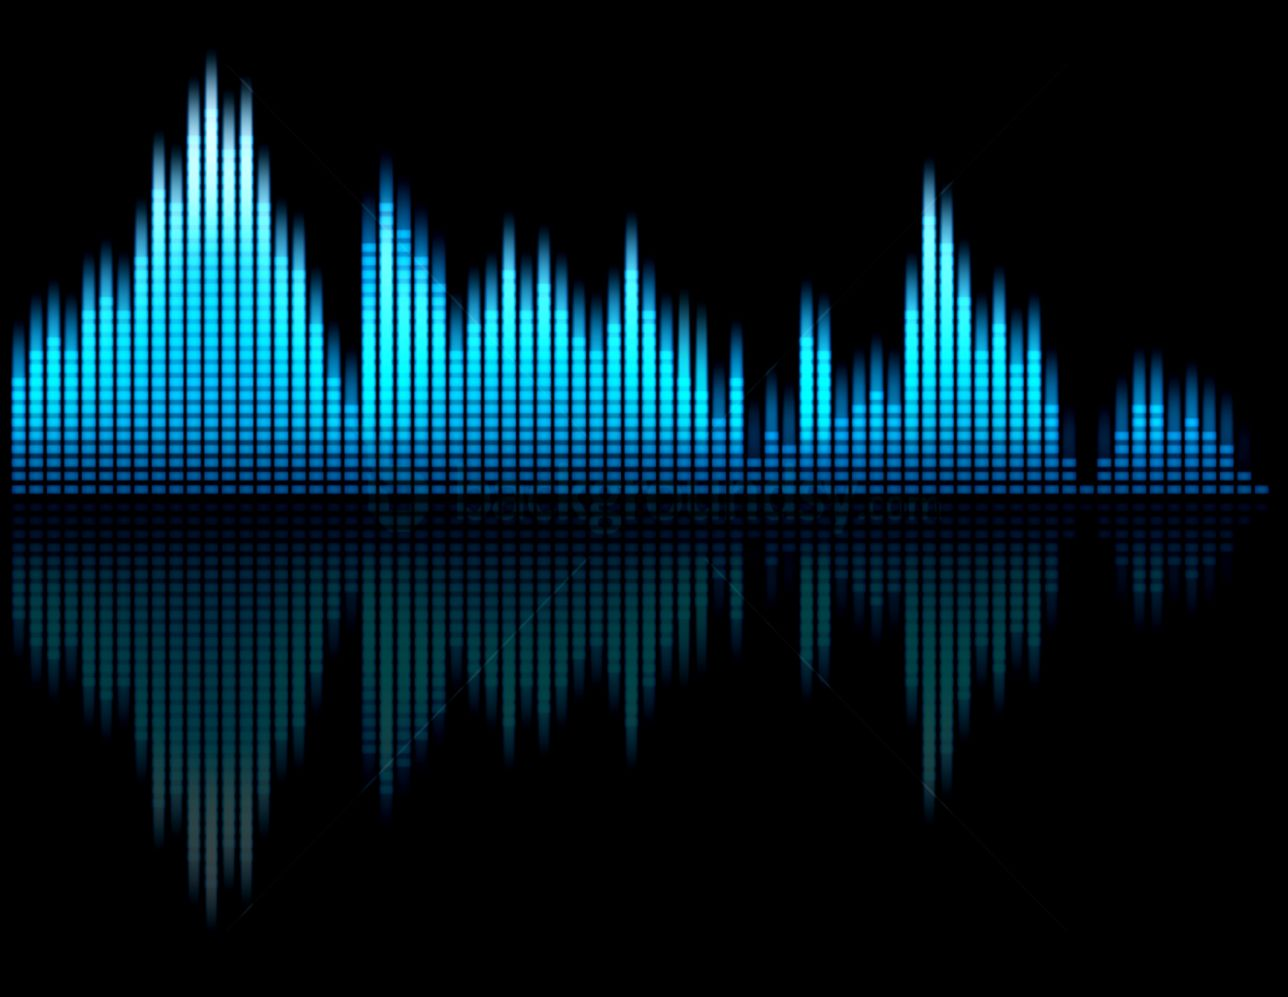 Music Equalizer Wallpaper: Equalizer Music Backgrounds